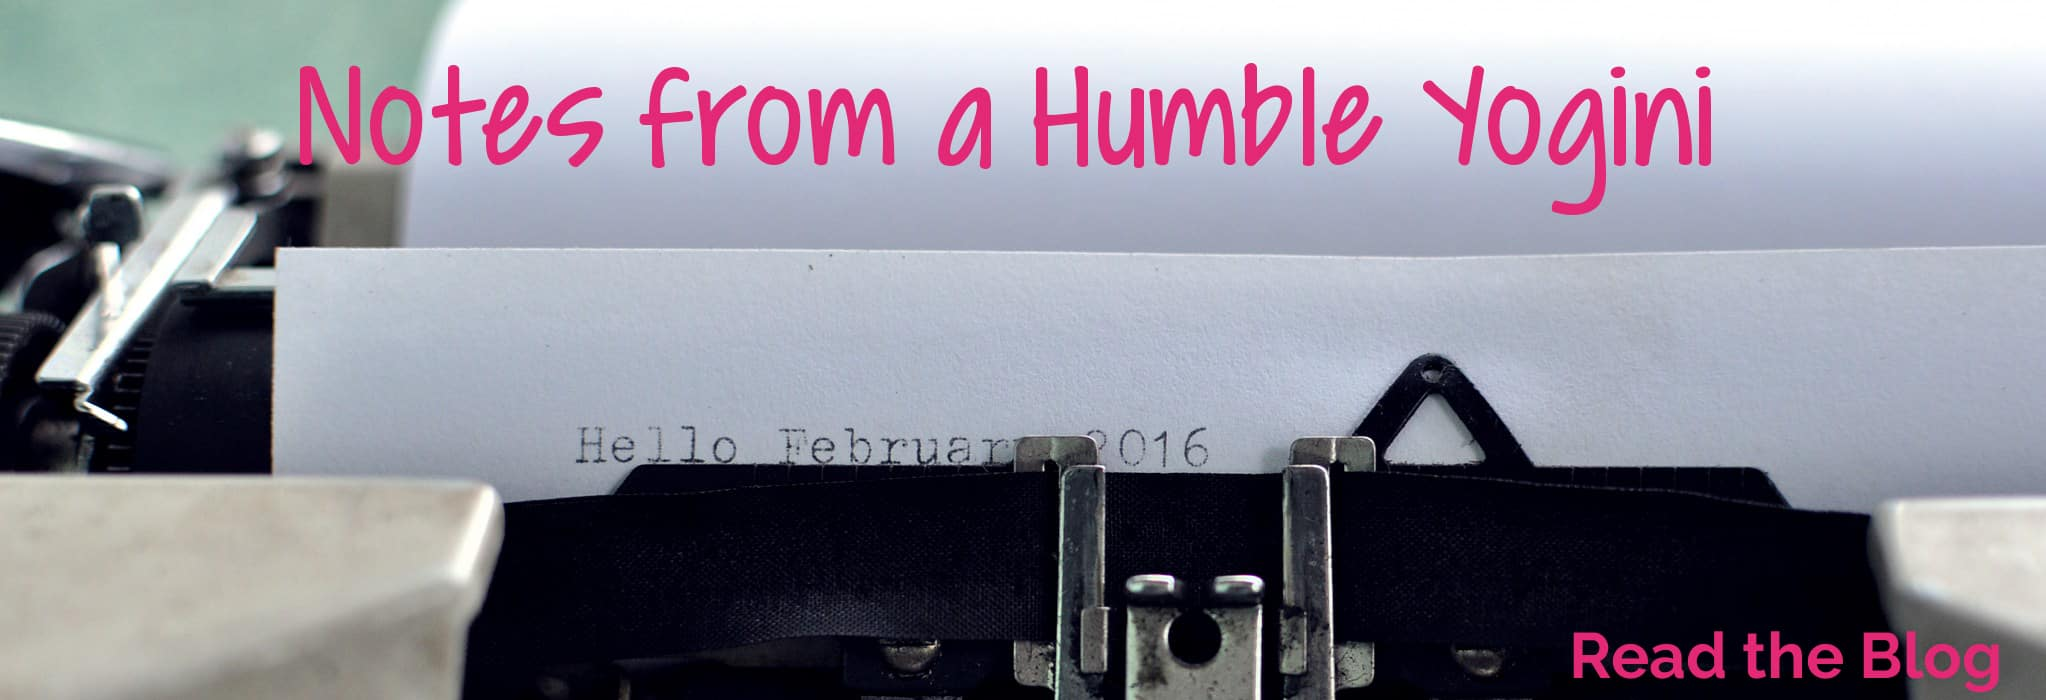 Notes from a Humble Yogini